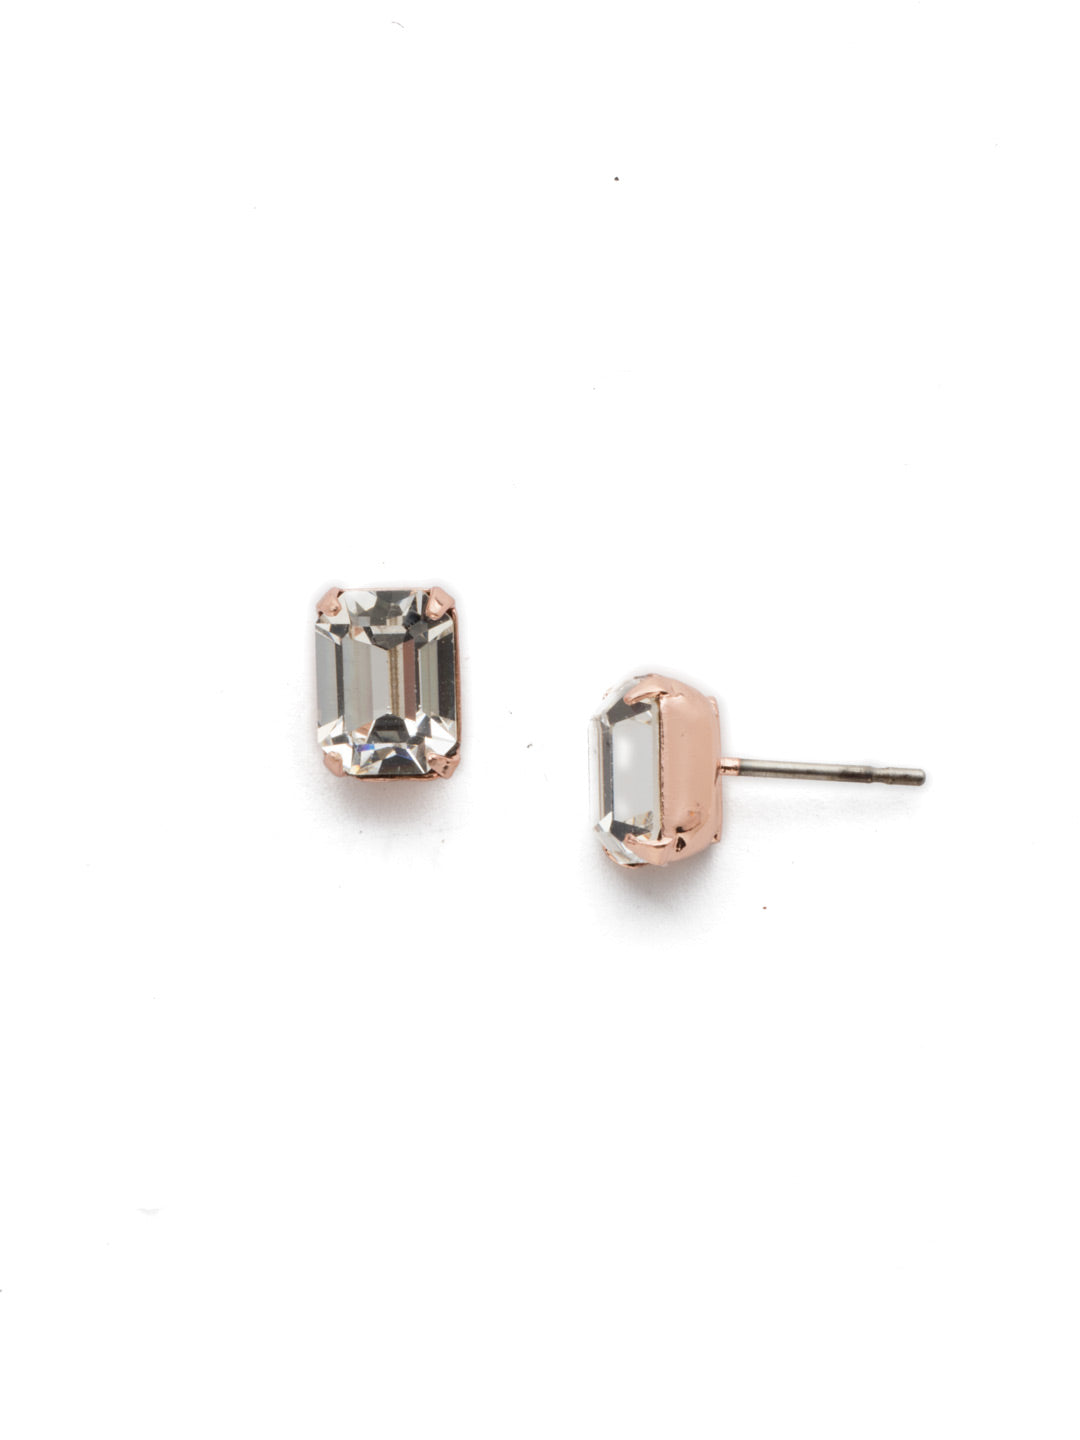 Mini Emerald Cut Stud Earrings - EBY42RGCRY